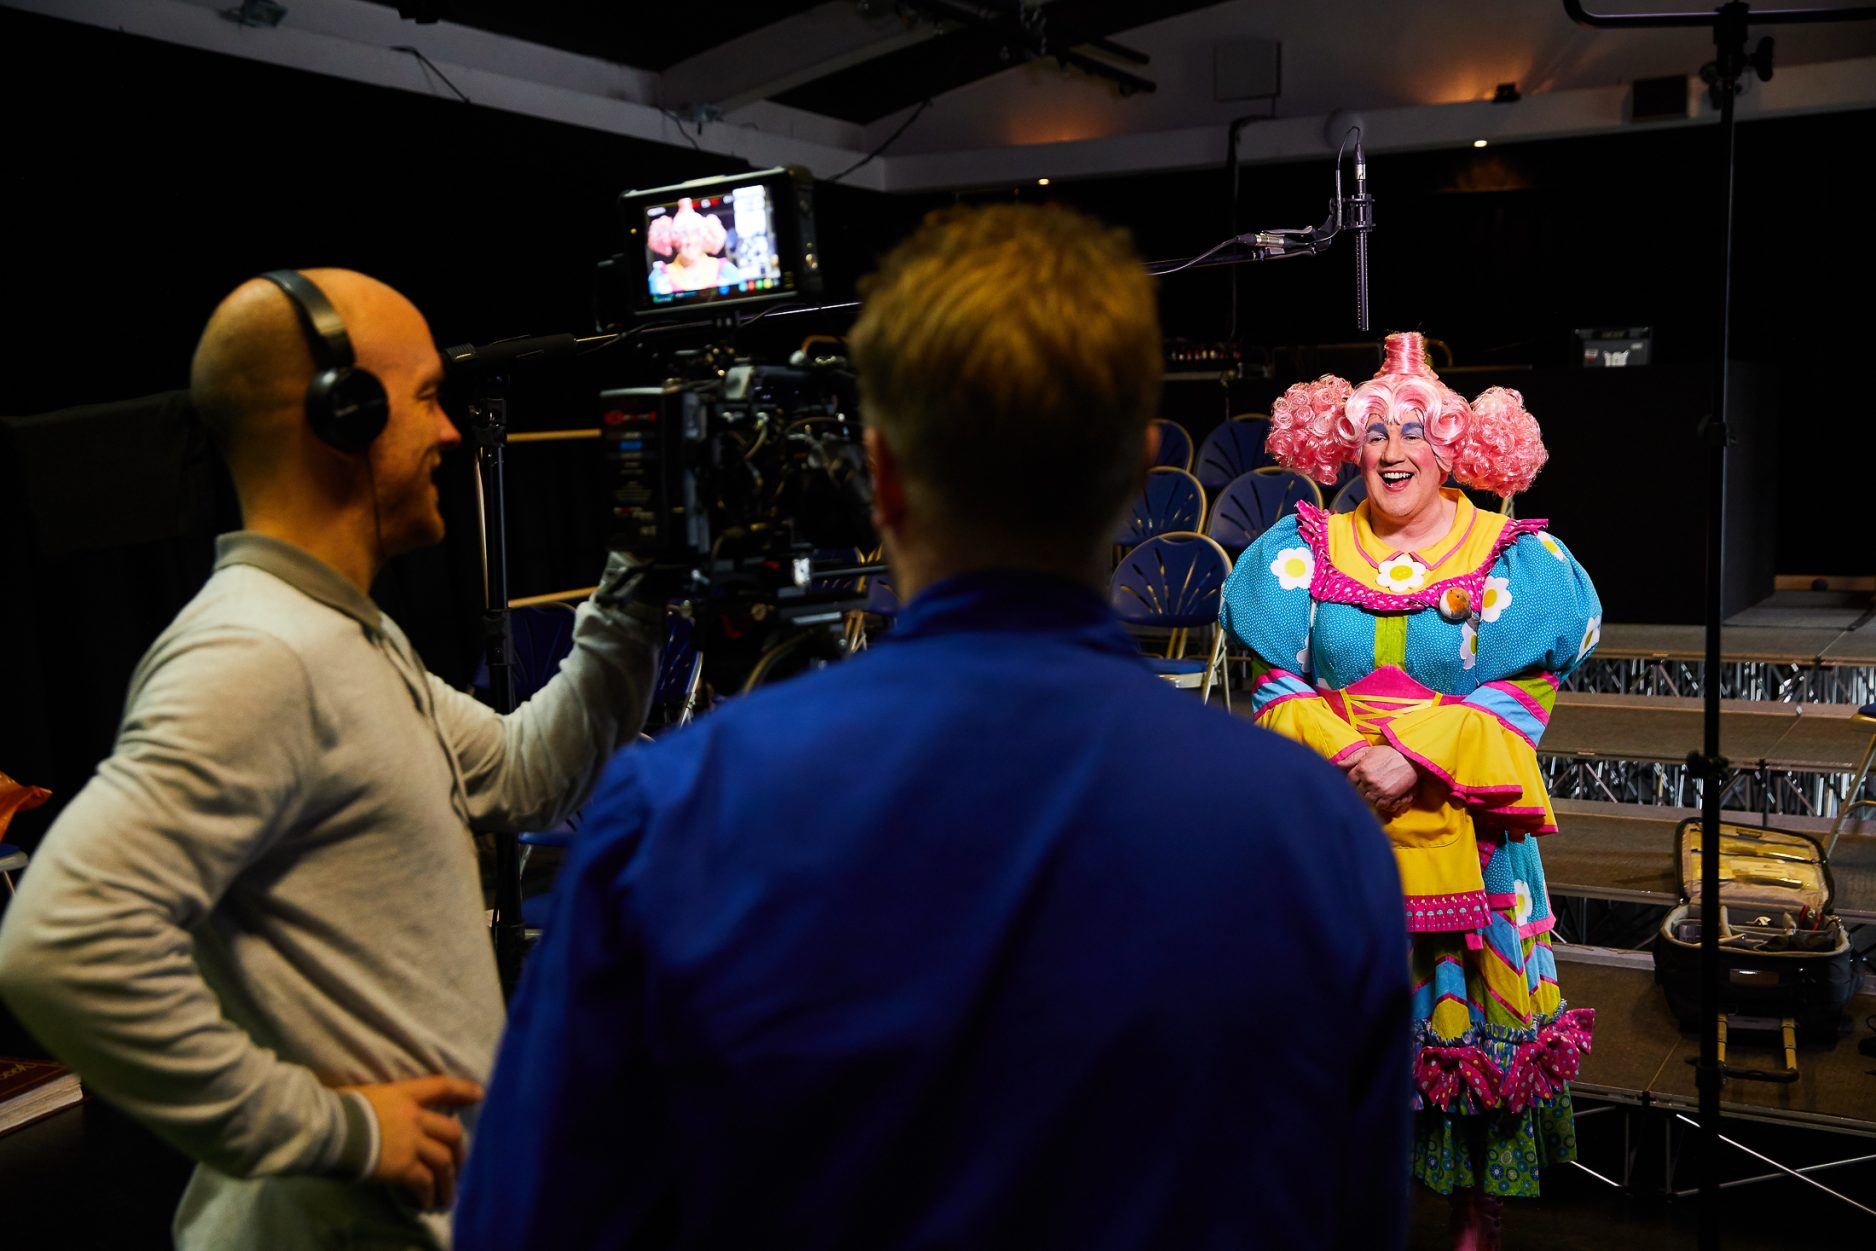 Behind the scenes at our panto trailer and photo shoot - photography by Tom Wren